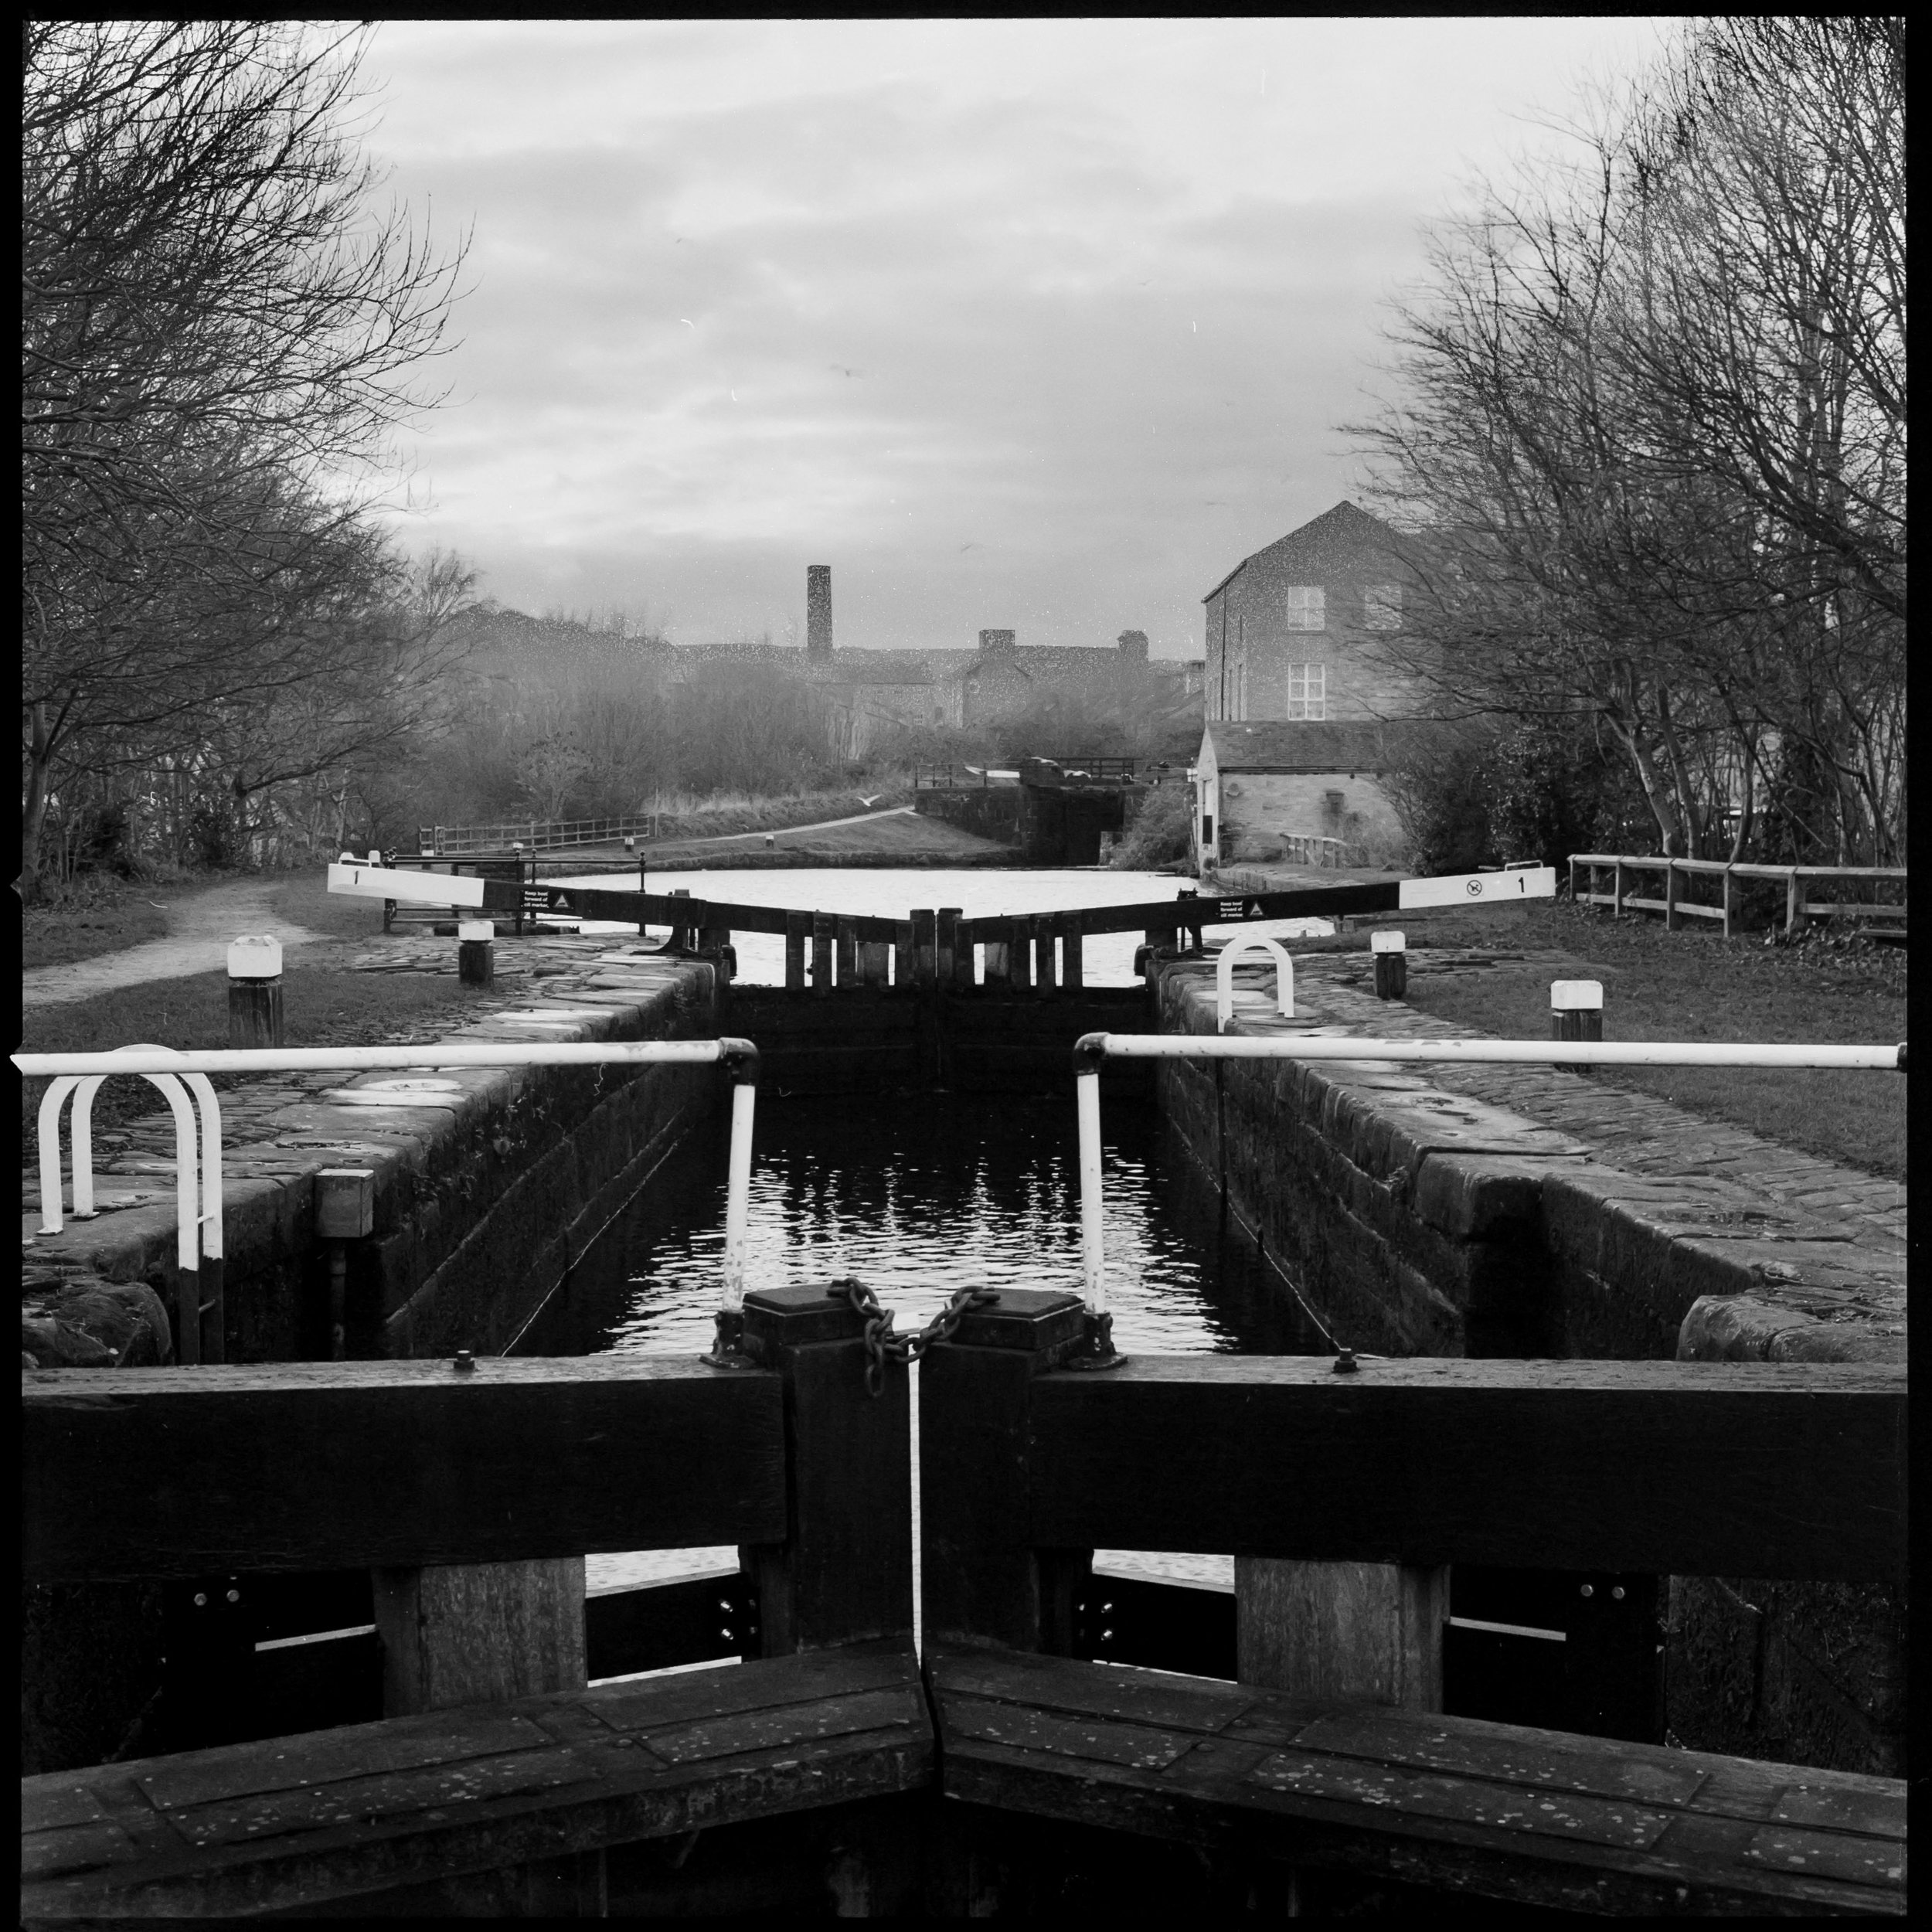 Sowerby Bridge canal, Halifax. Hasselblad 500cm, Ilford HP5.